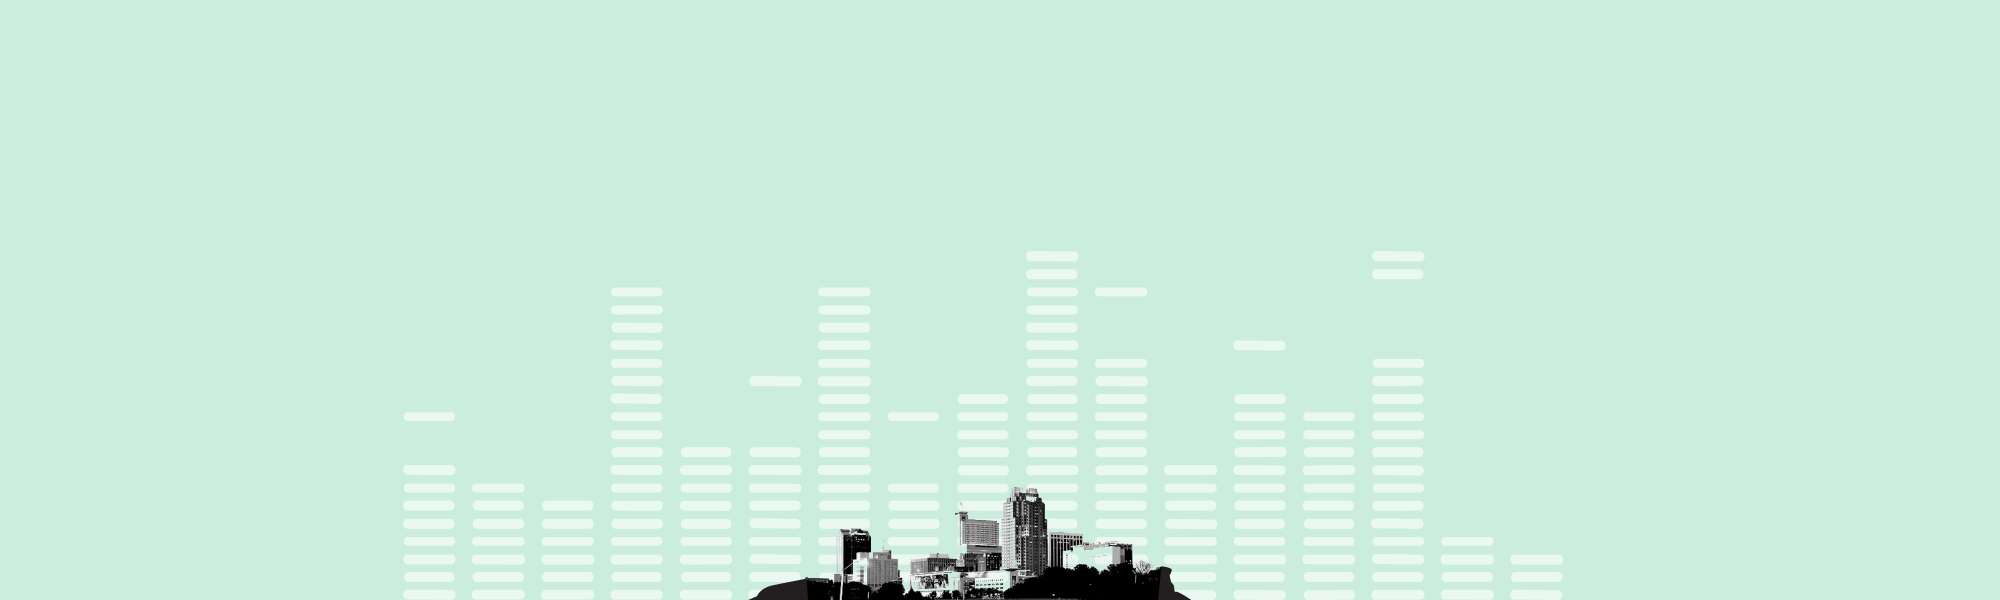 raleigh-cityscape-music1